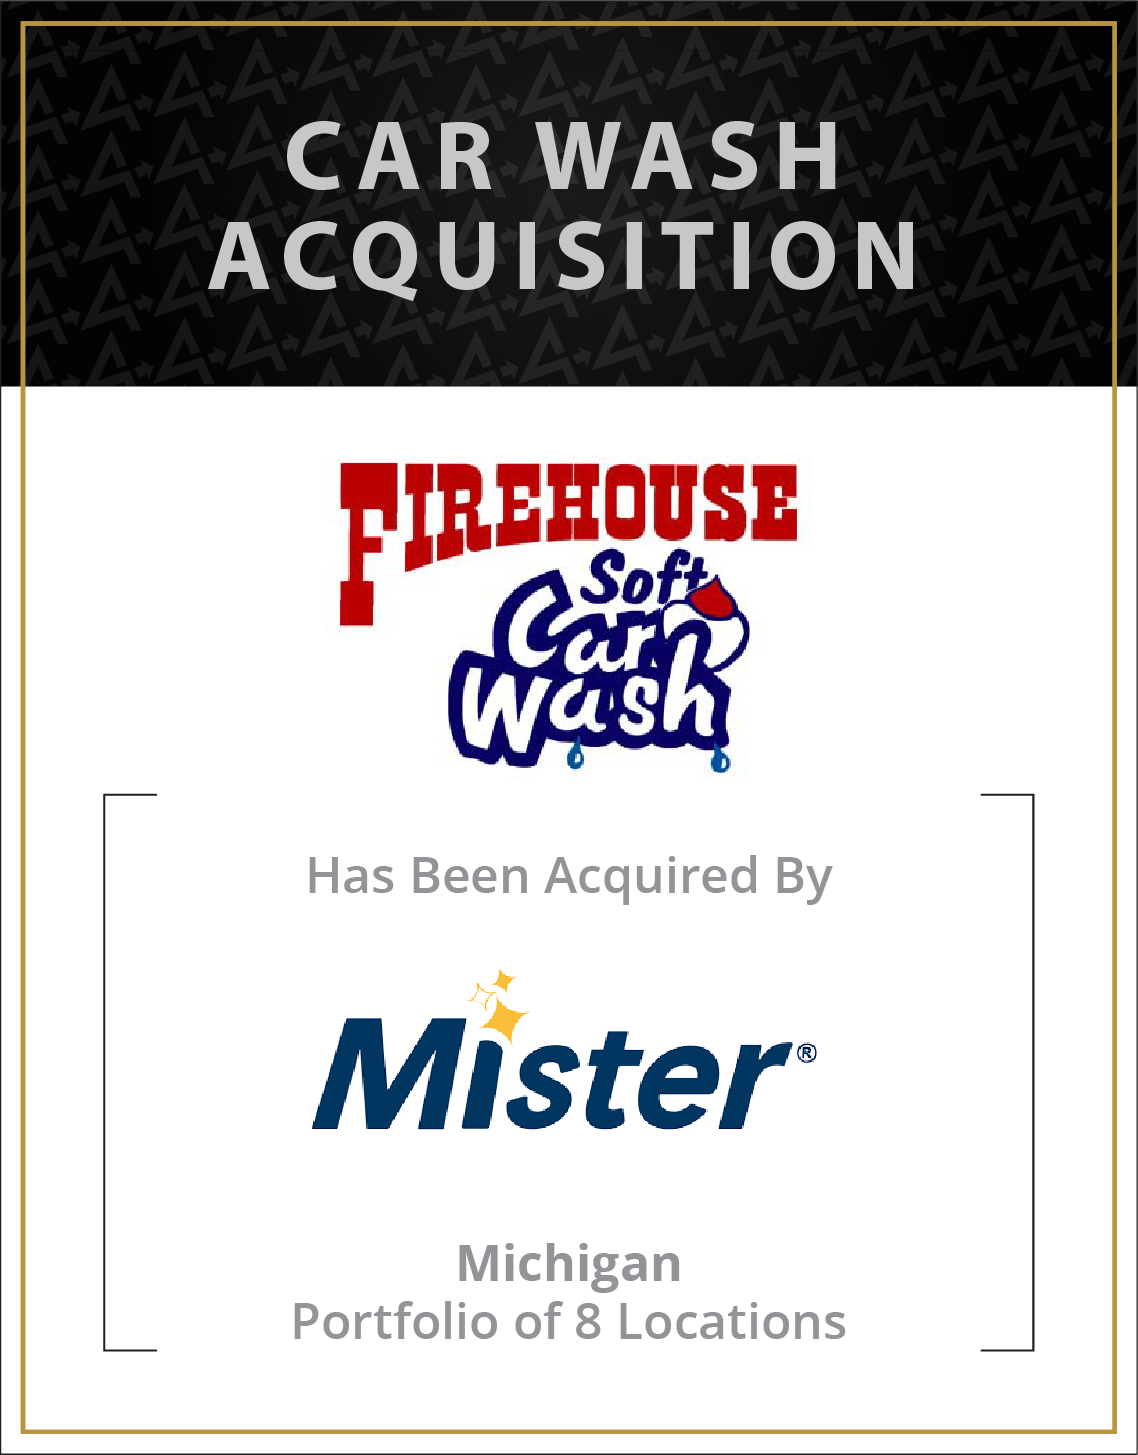 Firehouse Soft Car Wash has been acquired by Mister Carwash